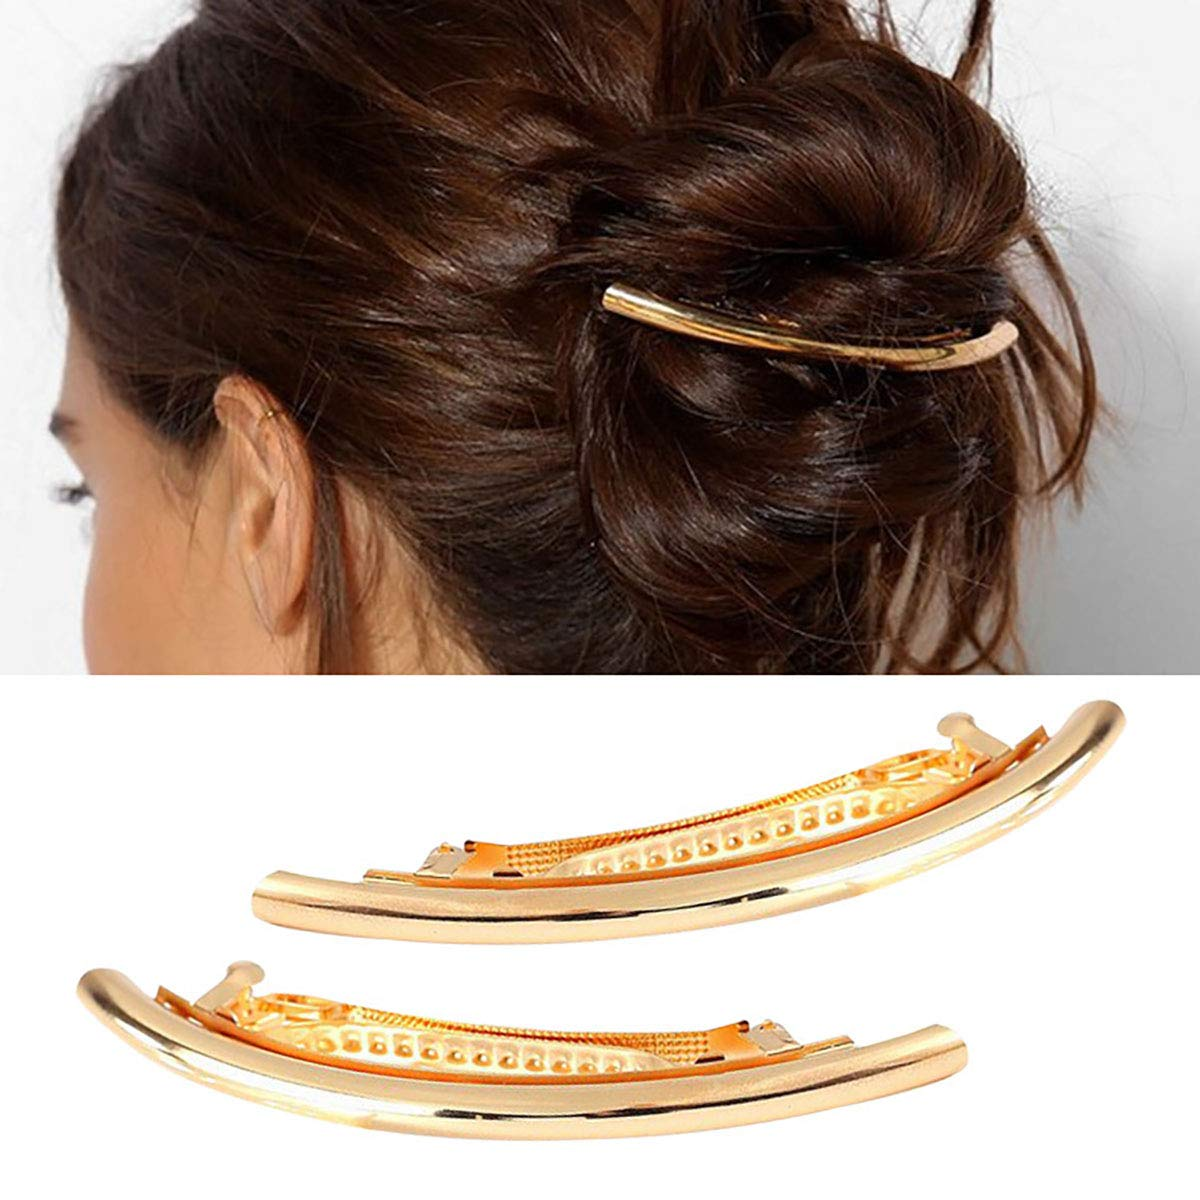 2PCS Women Girls Metal Alloy French Hair Barrette Hair Clip Simple Durable Hair Pin Hair Accessories Spring Clips (Gold) Fodattm